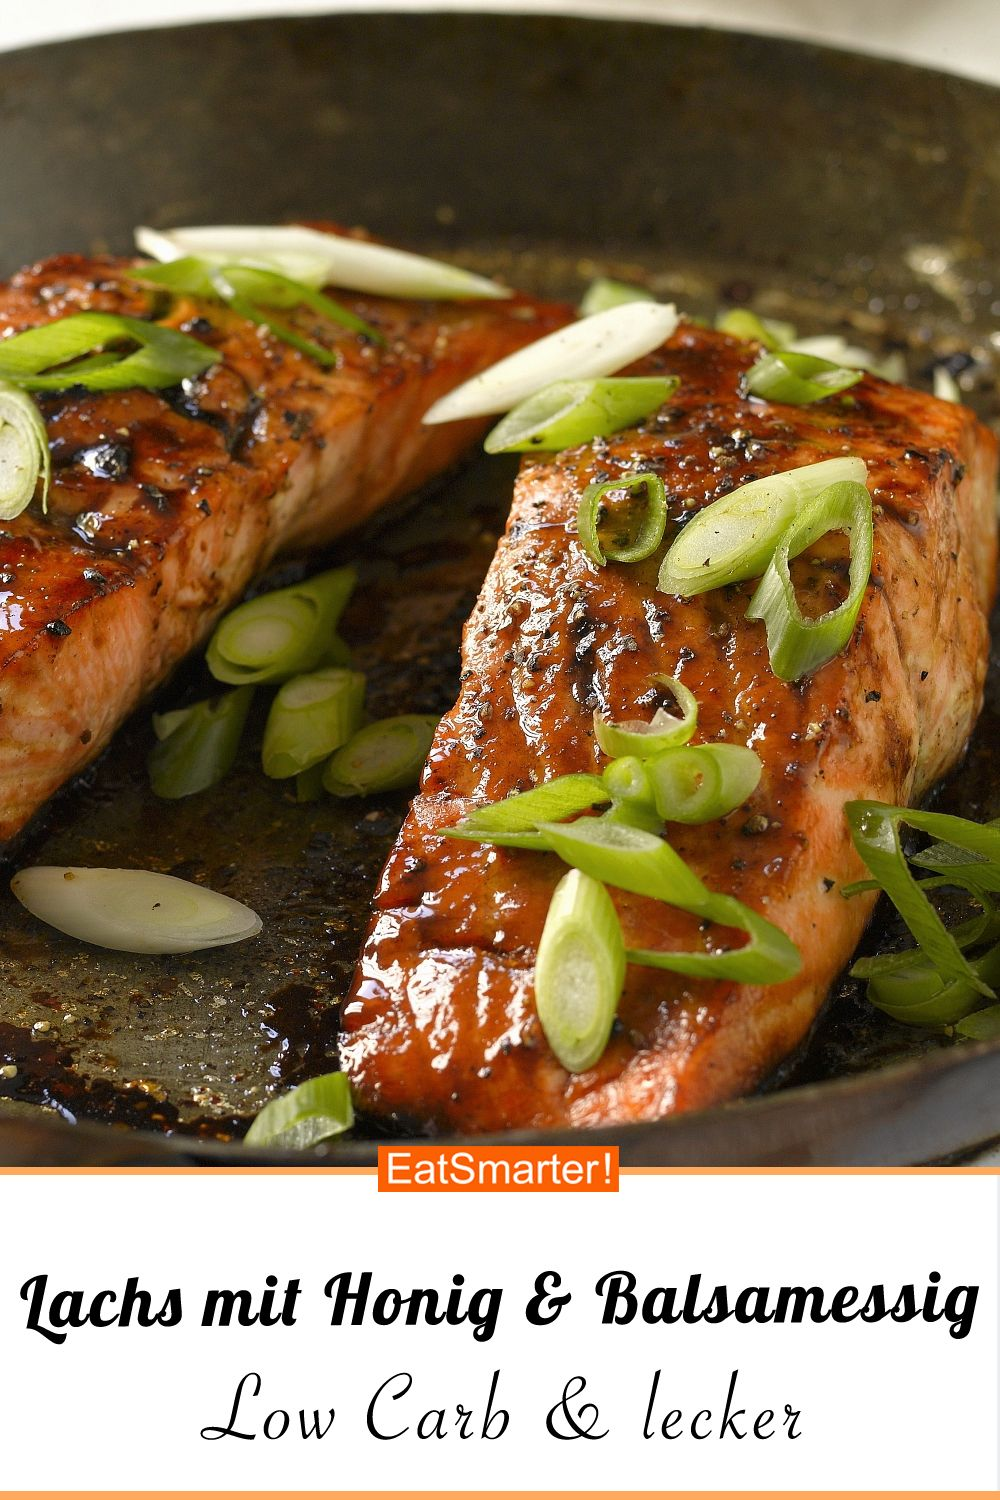 Photo of Salmon with honey and balsamic vinegar